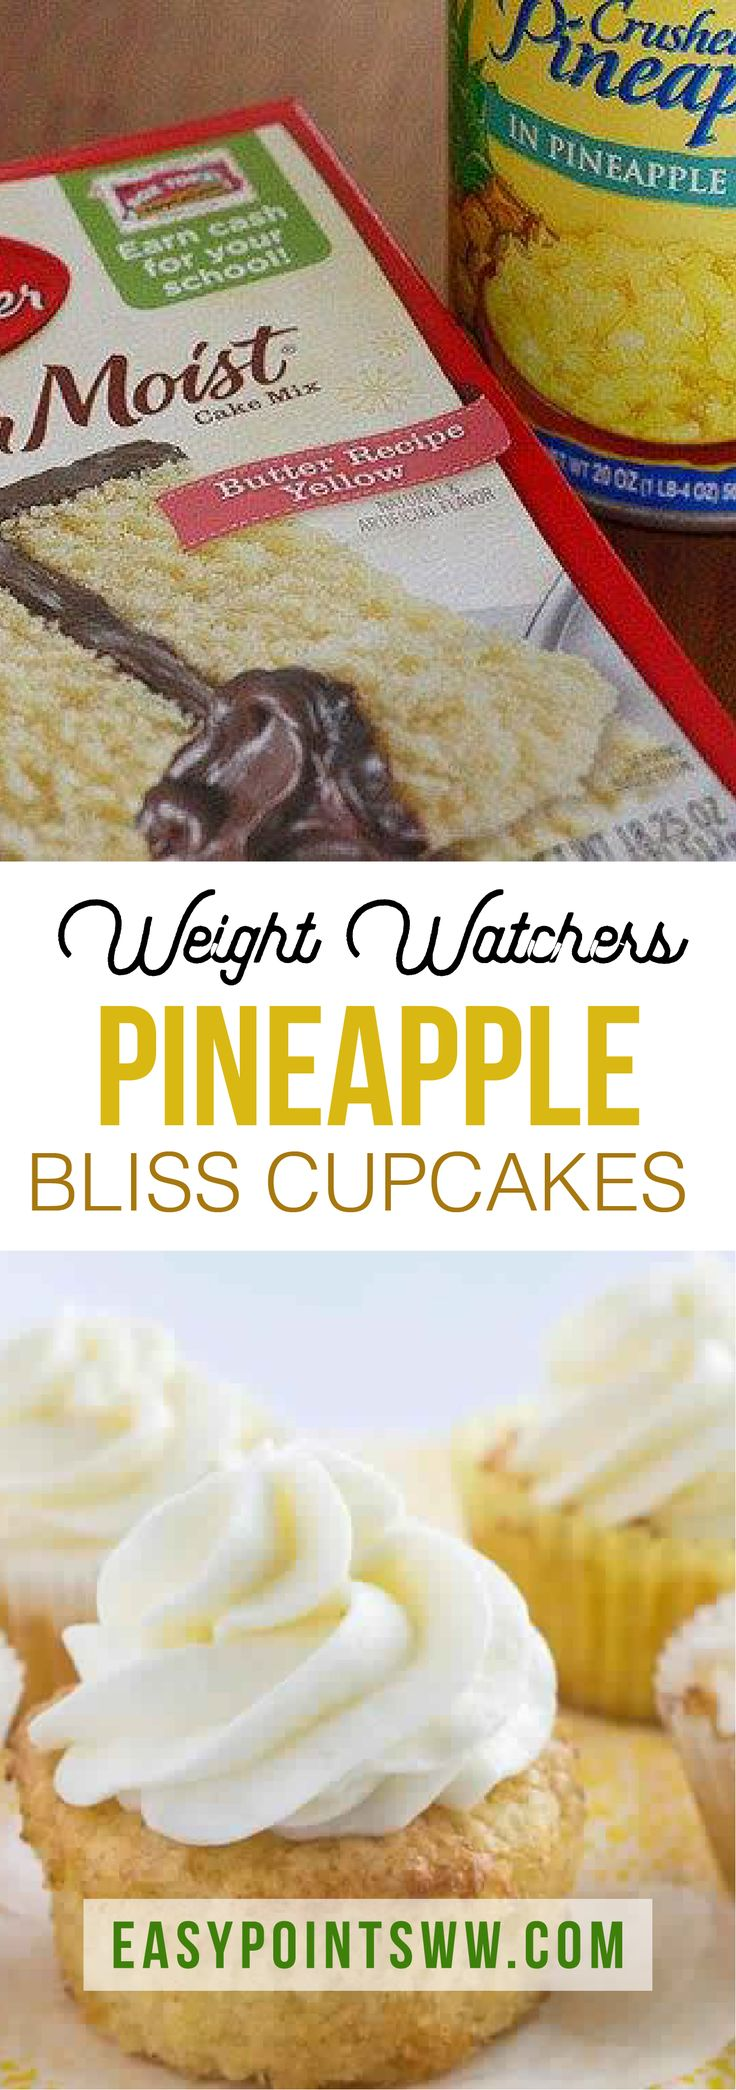 Easy Pineapple Bliss Cupcakes ♥